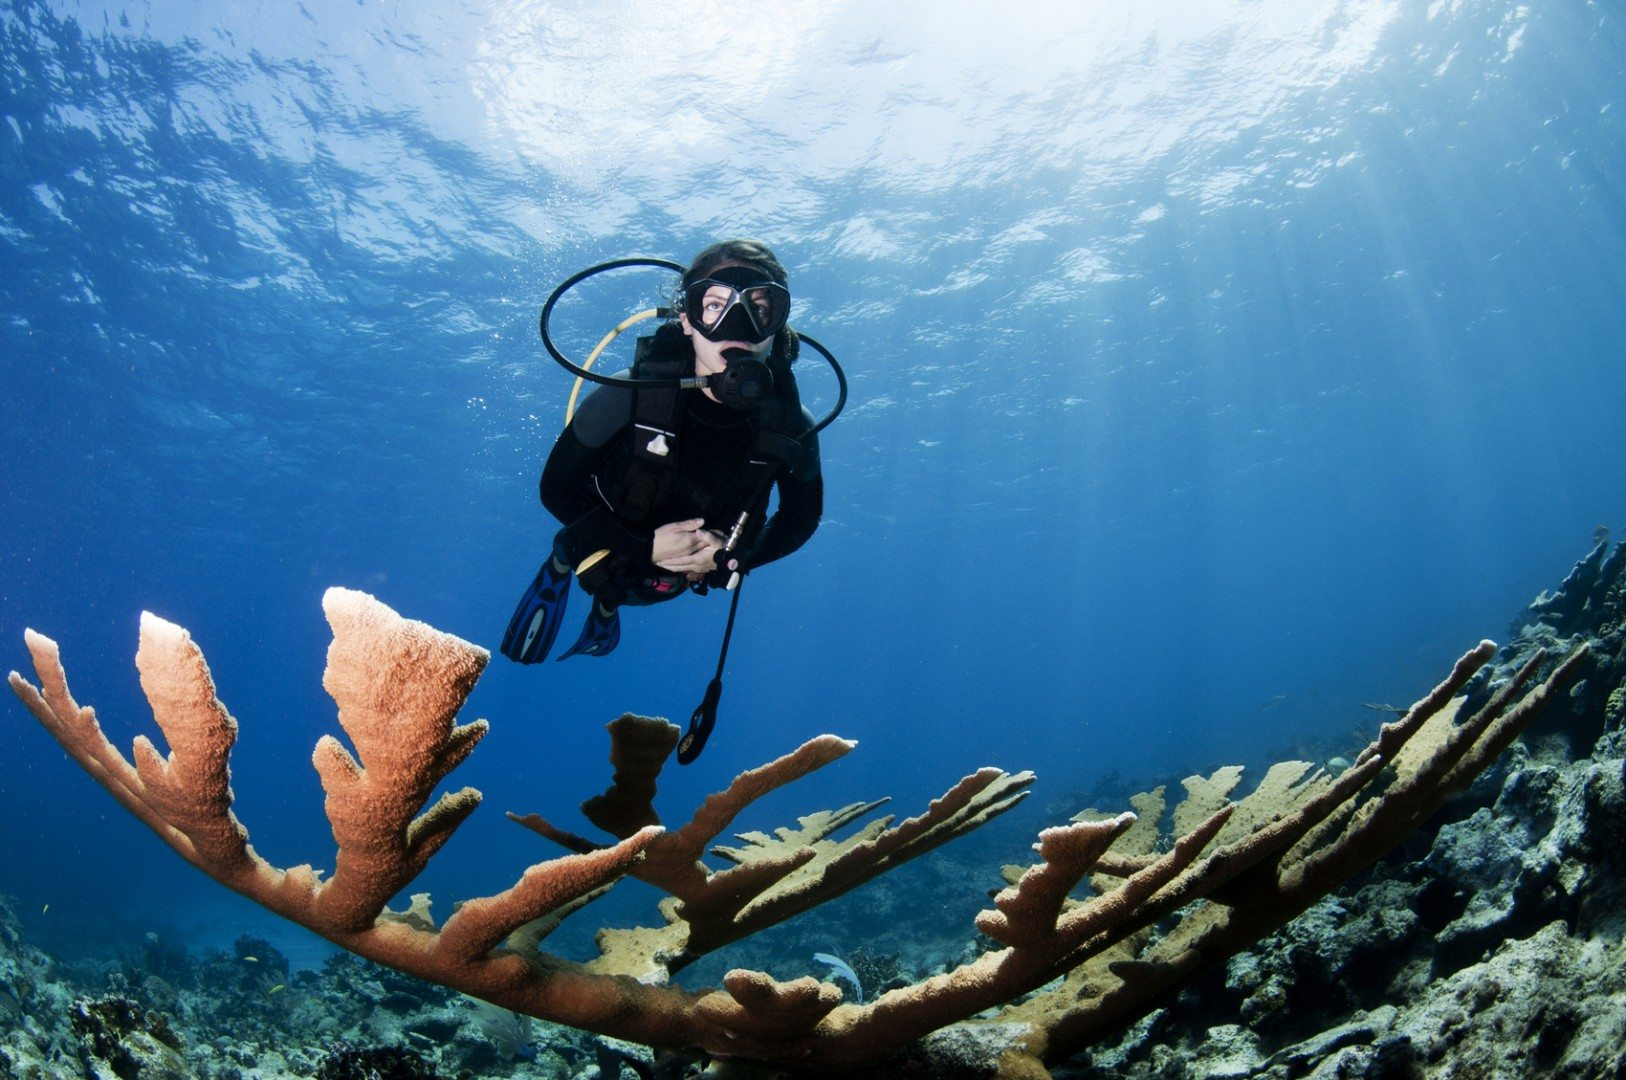 female-scuba-diver-swimming-over-coral-in-the-Caribbean-sea-000023790559_Medium